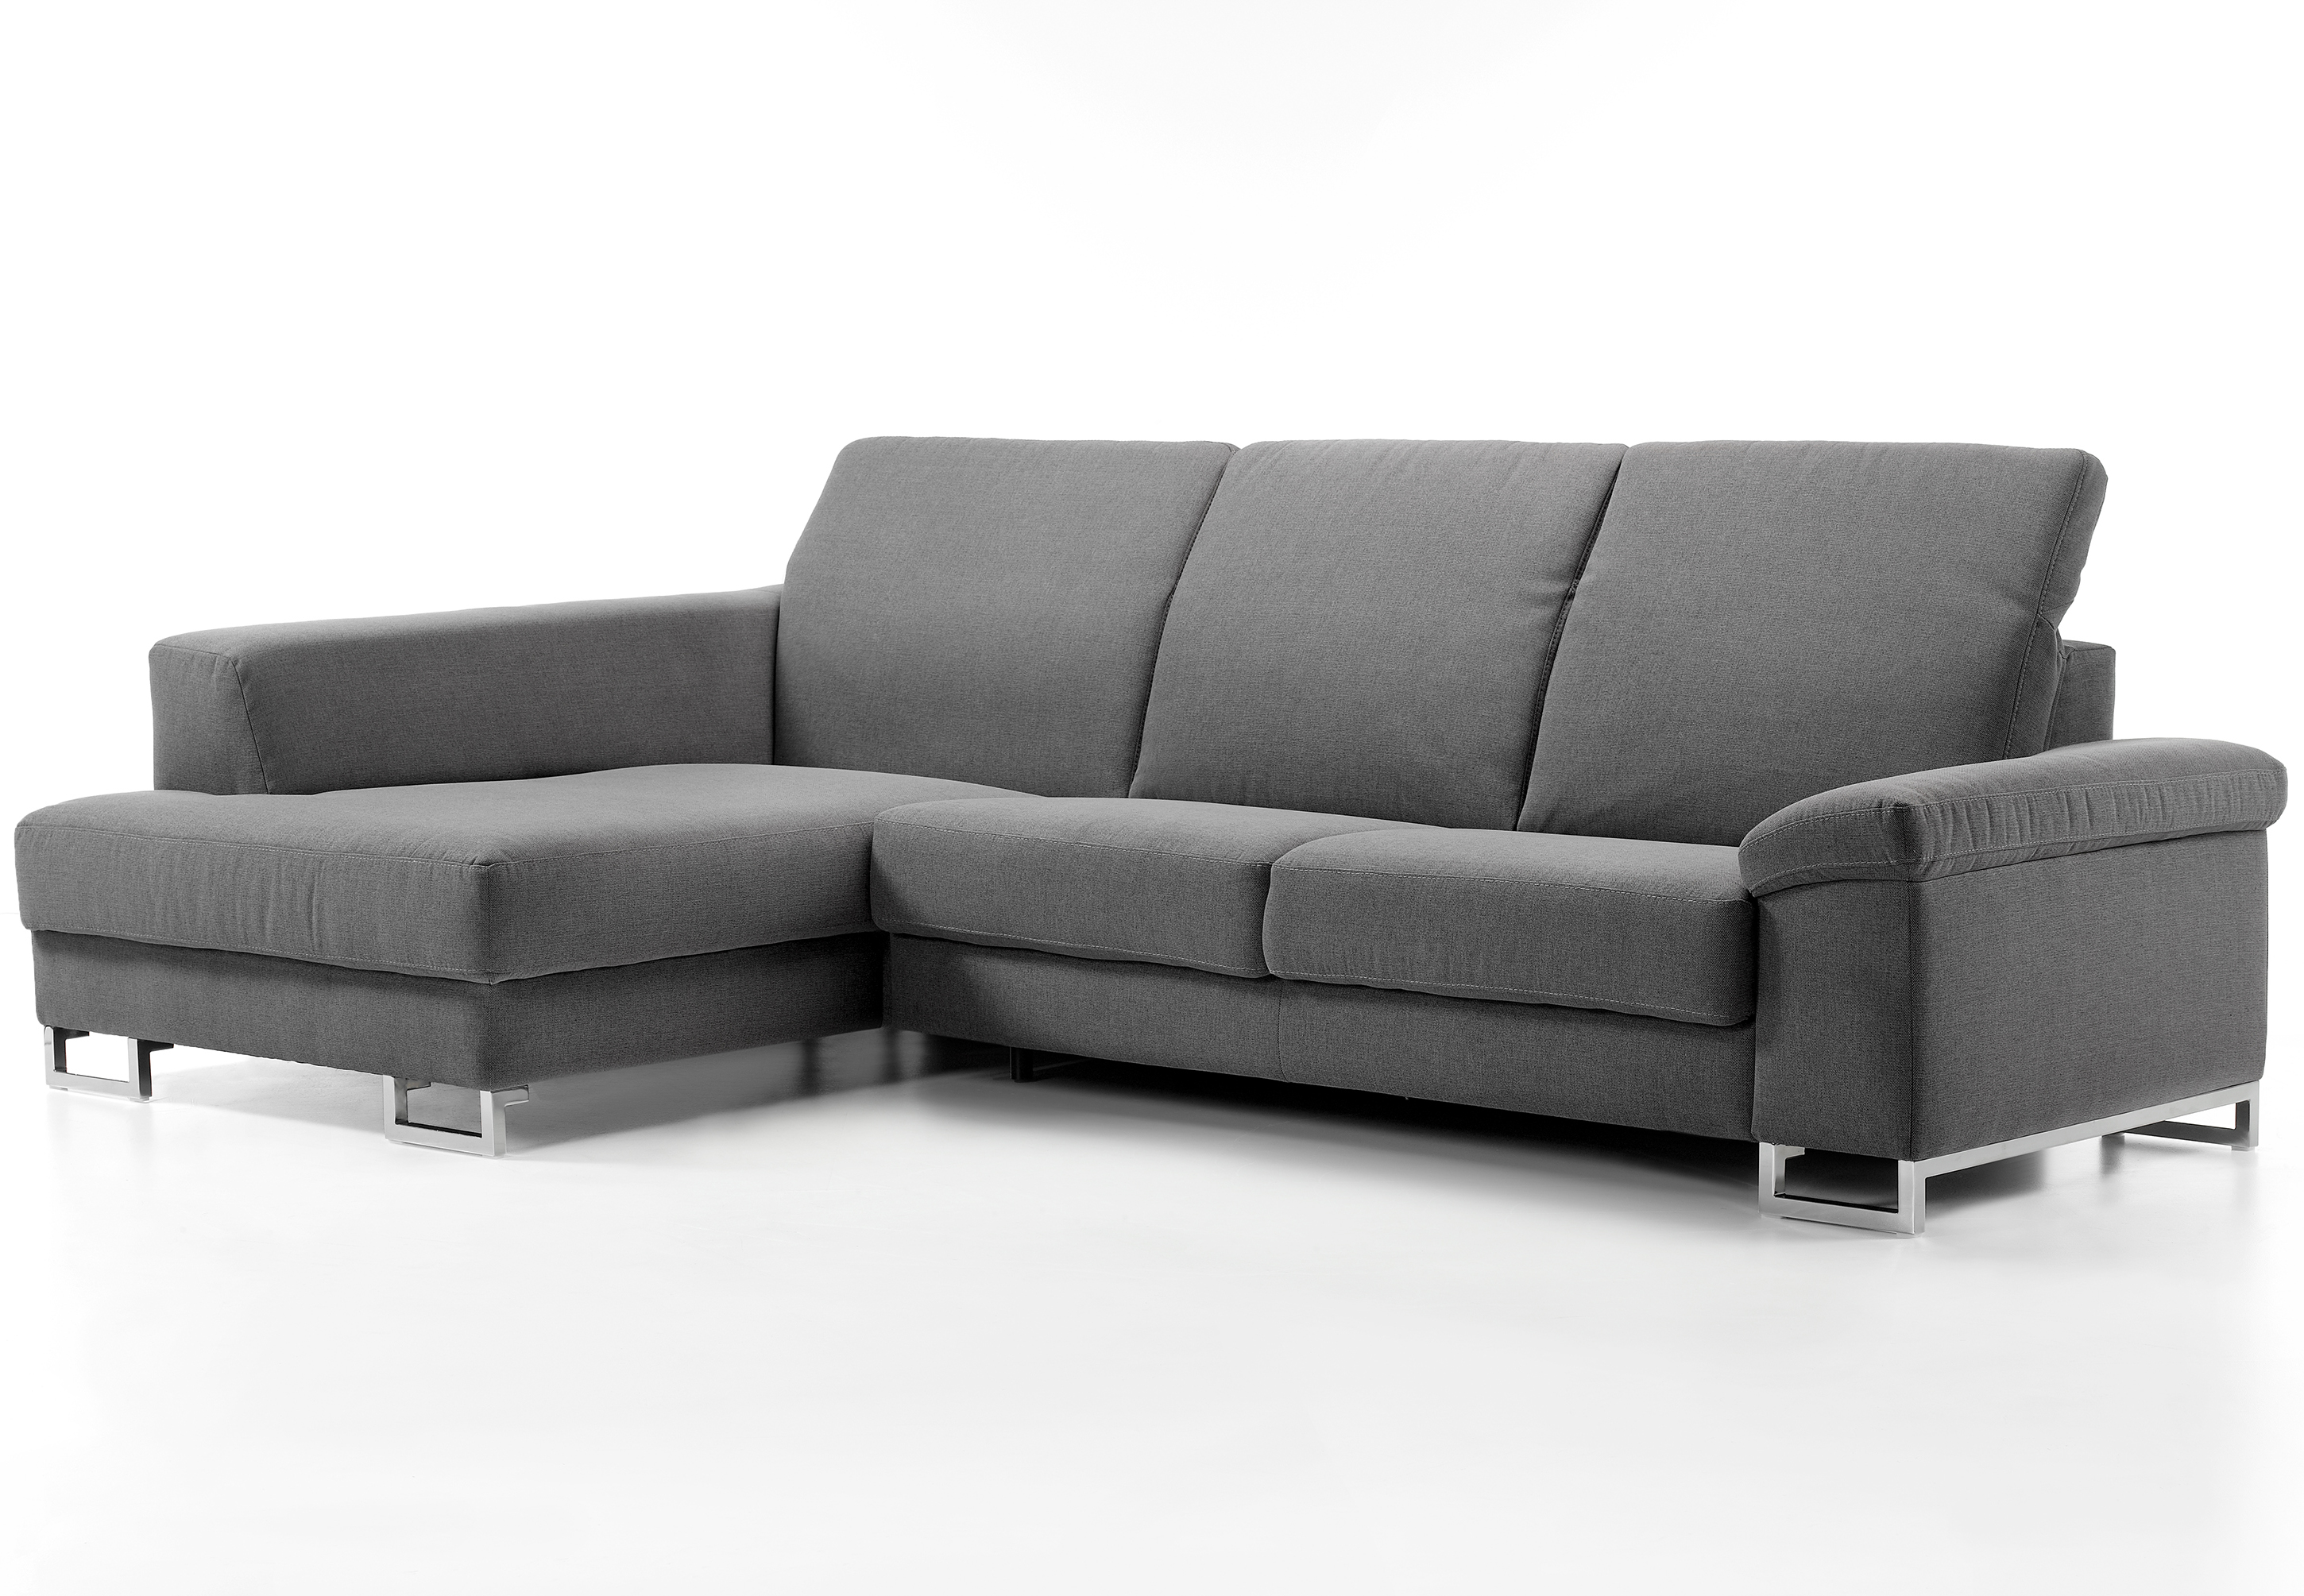 Deimos Sectional Sofa, ROM Belgium. Previous Next